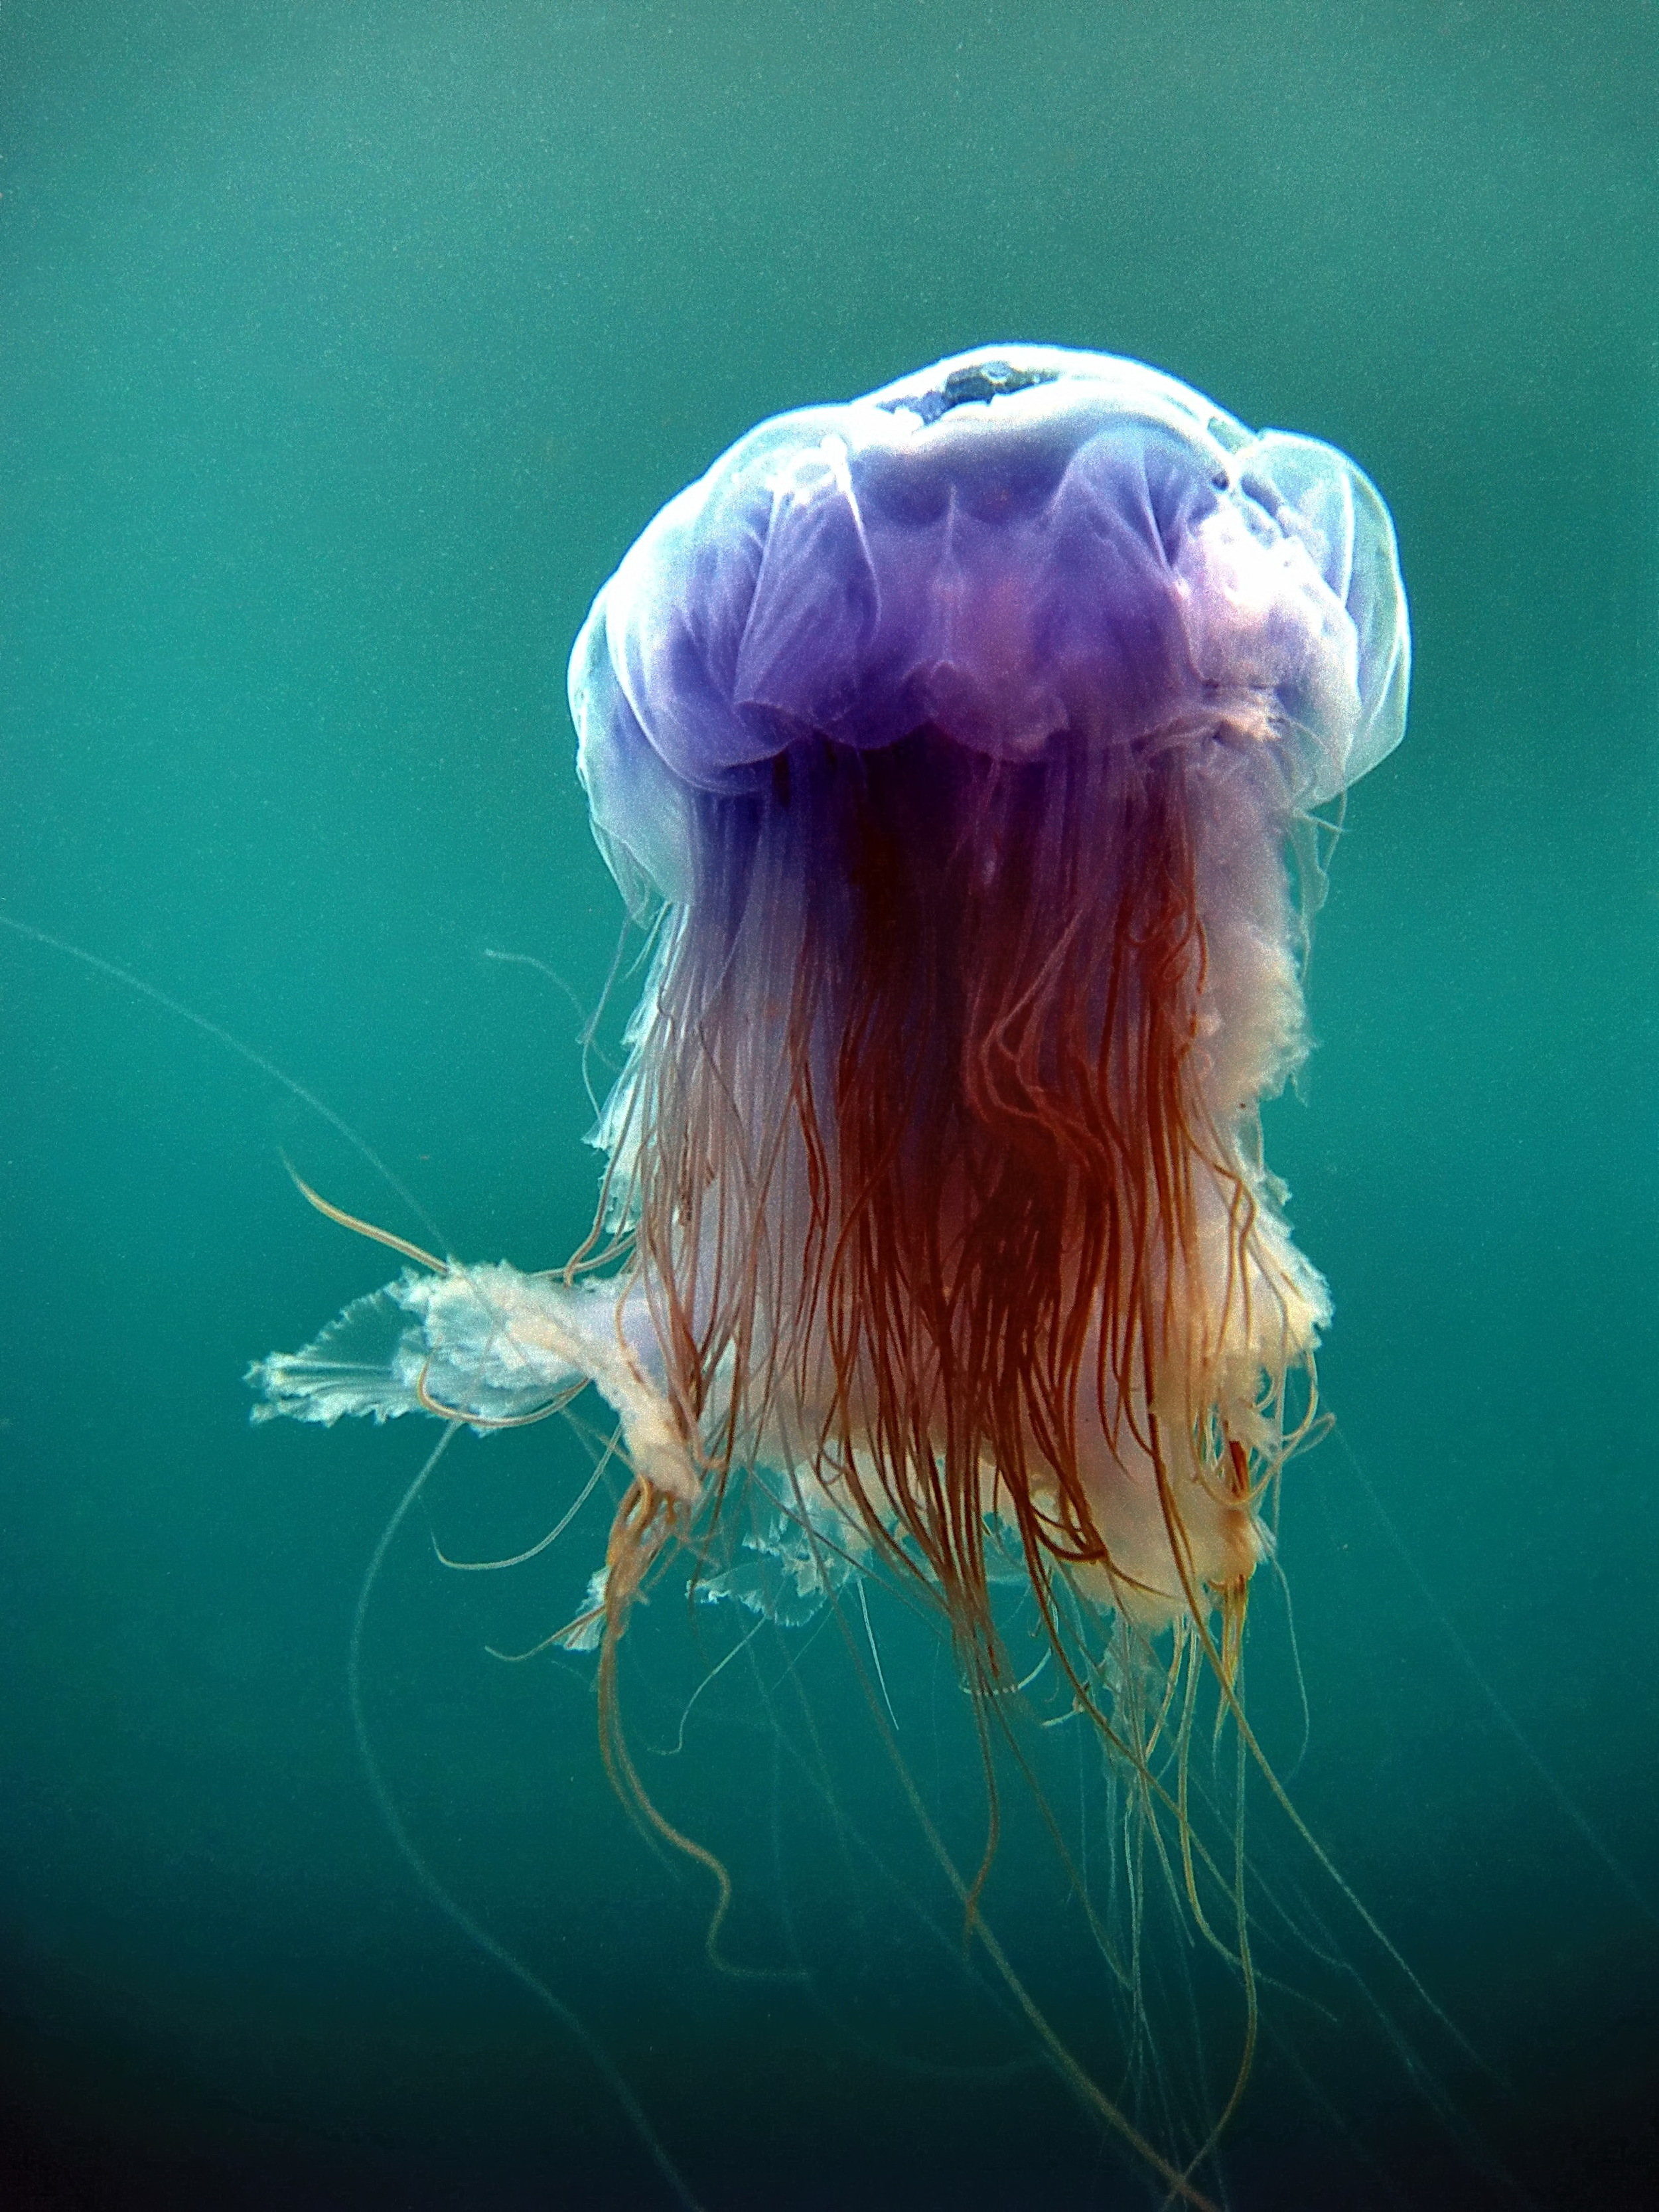 Jellyfish, captured on the east side of Nolsoy